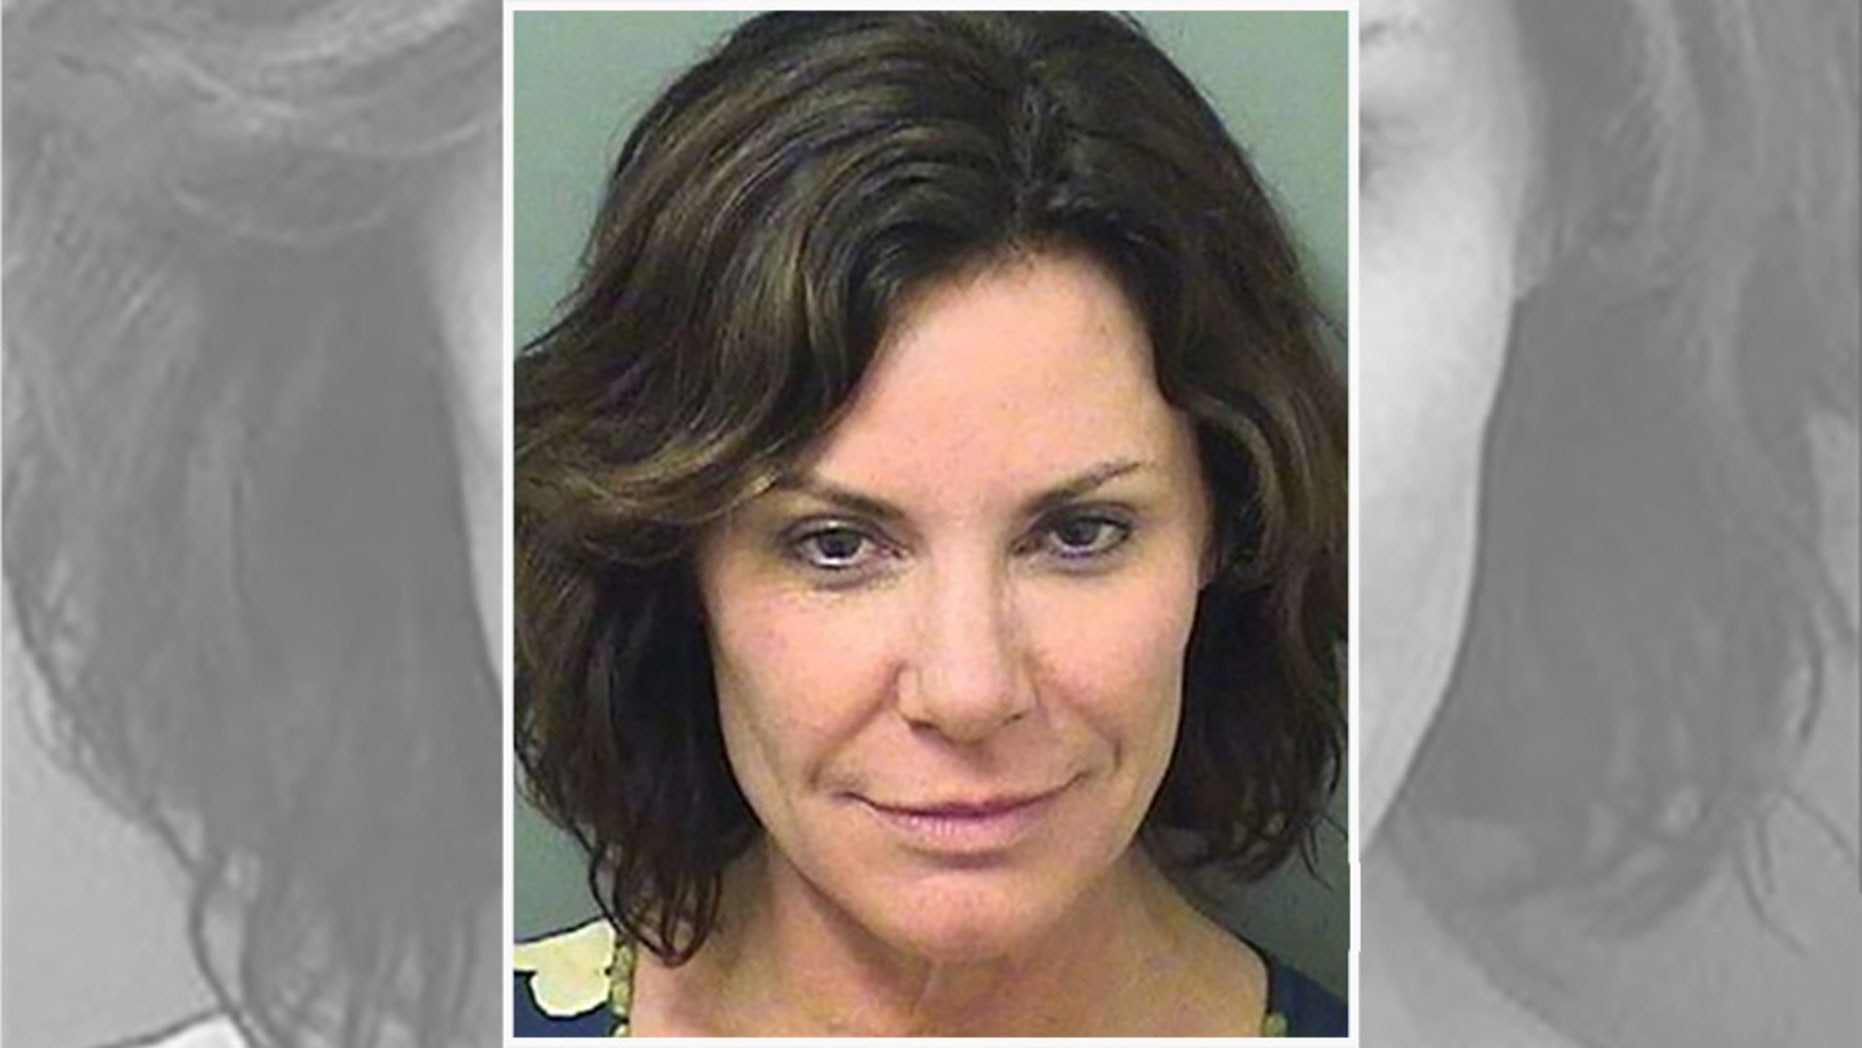 Luann de Lesseps is pictured in her mug shot.